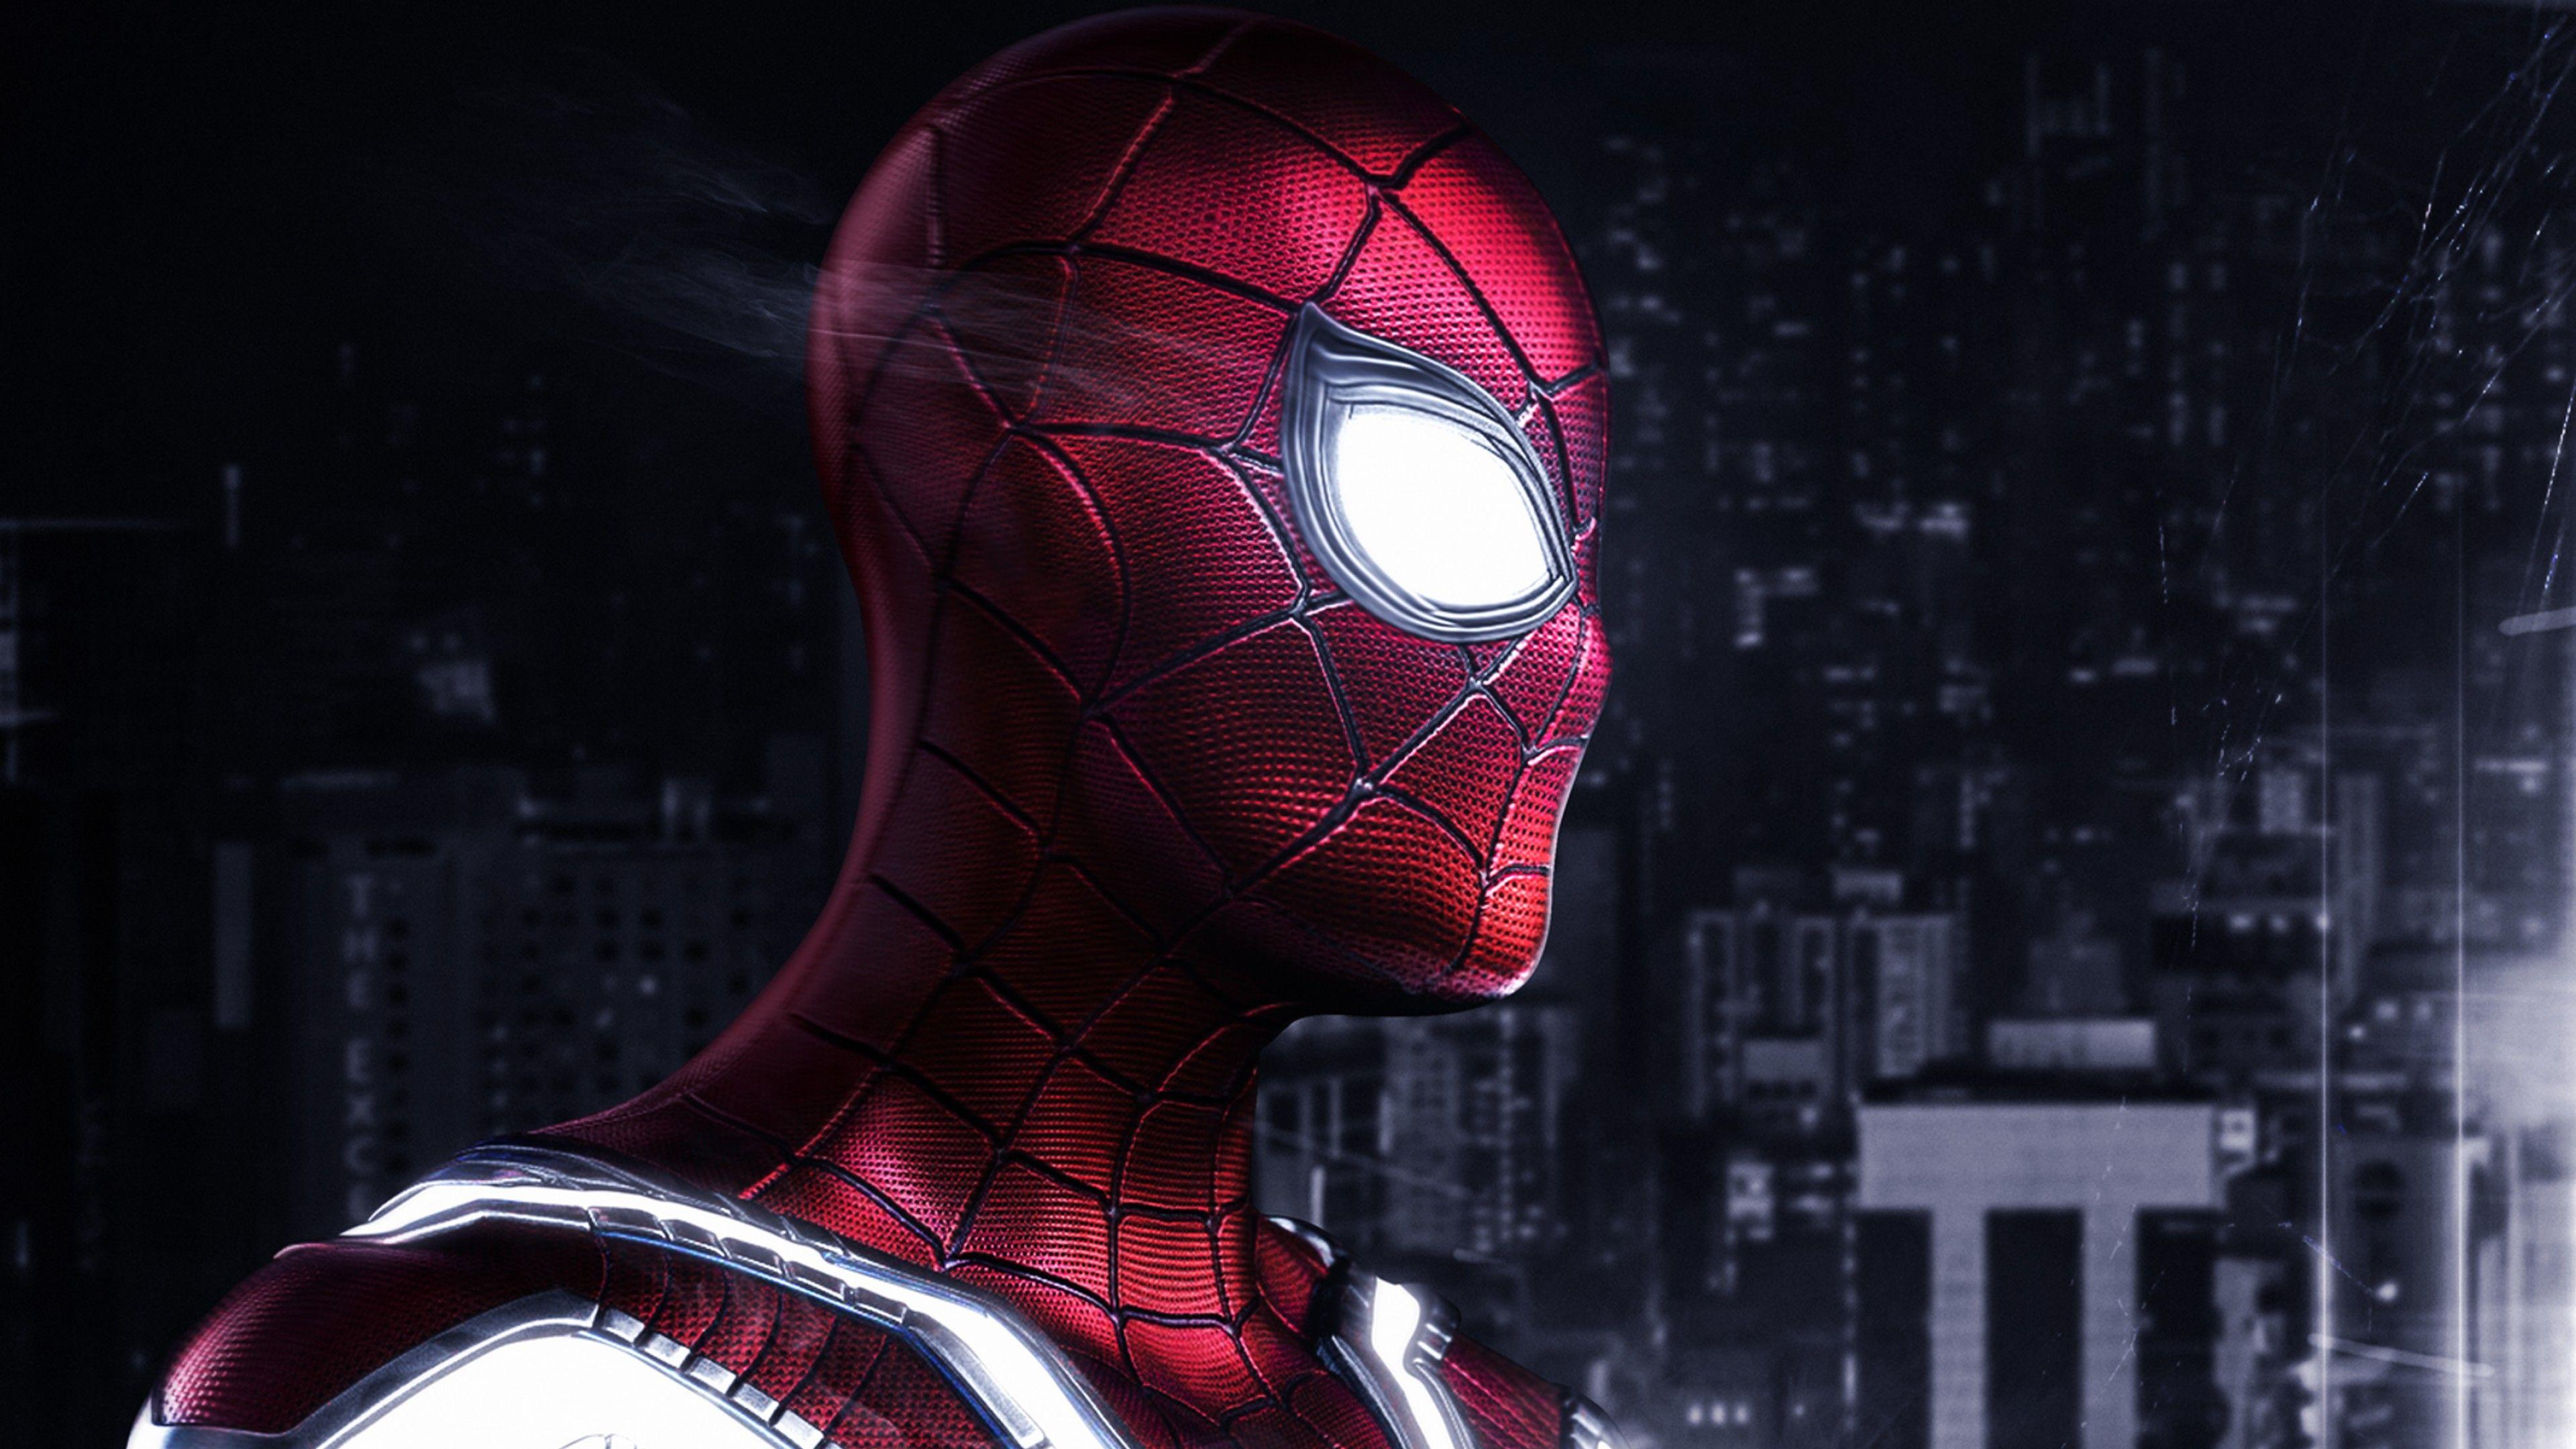 Spider-Man 4K Wallpapers - Wallpaper Cave